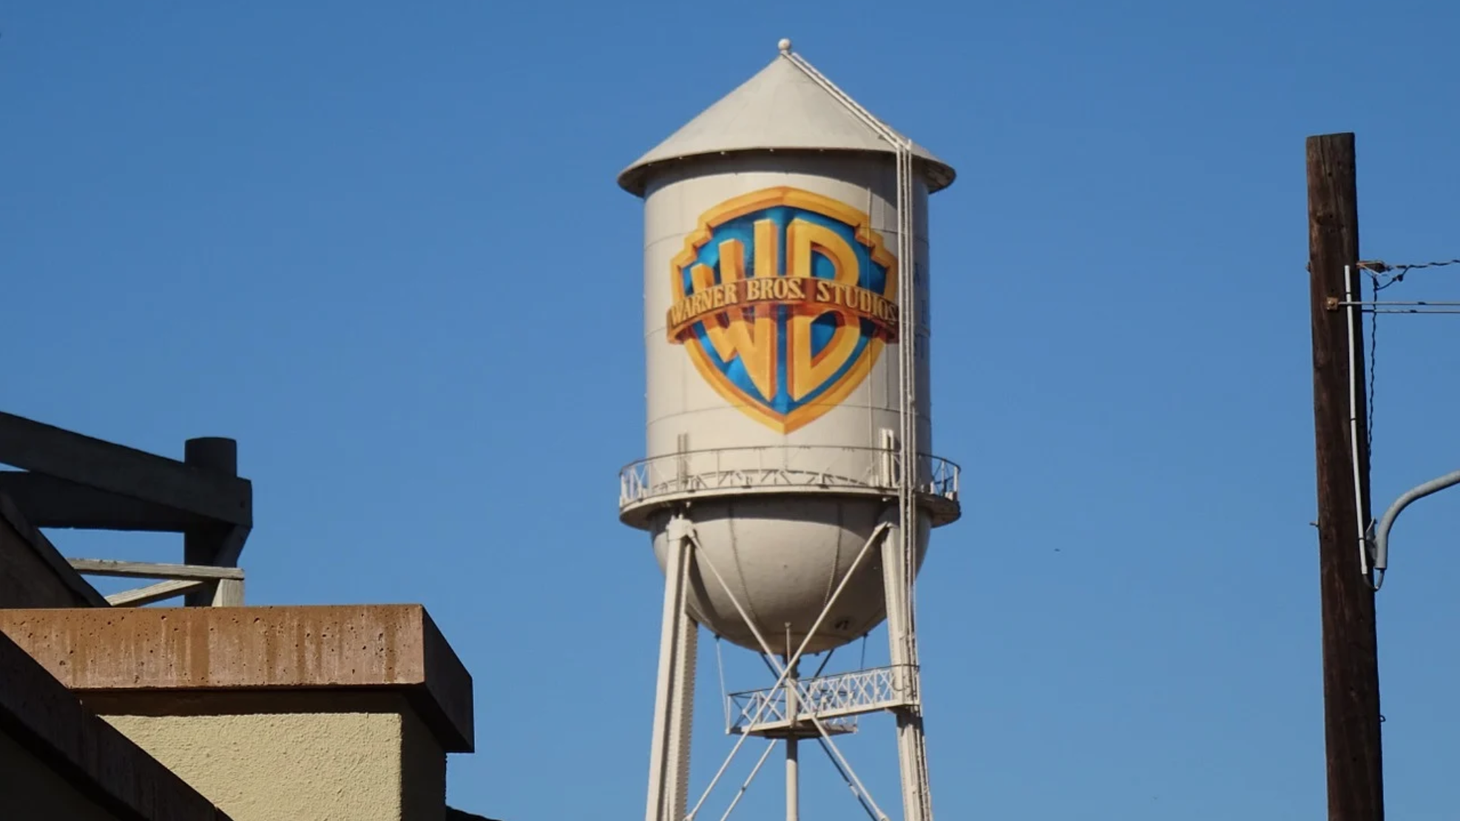 Warner Bros. is the latest media conglomerate to go through a massive restructuring in the streaming era.